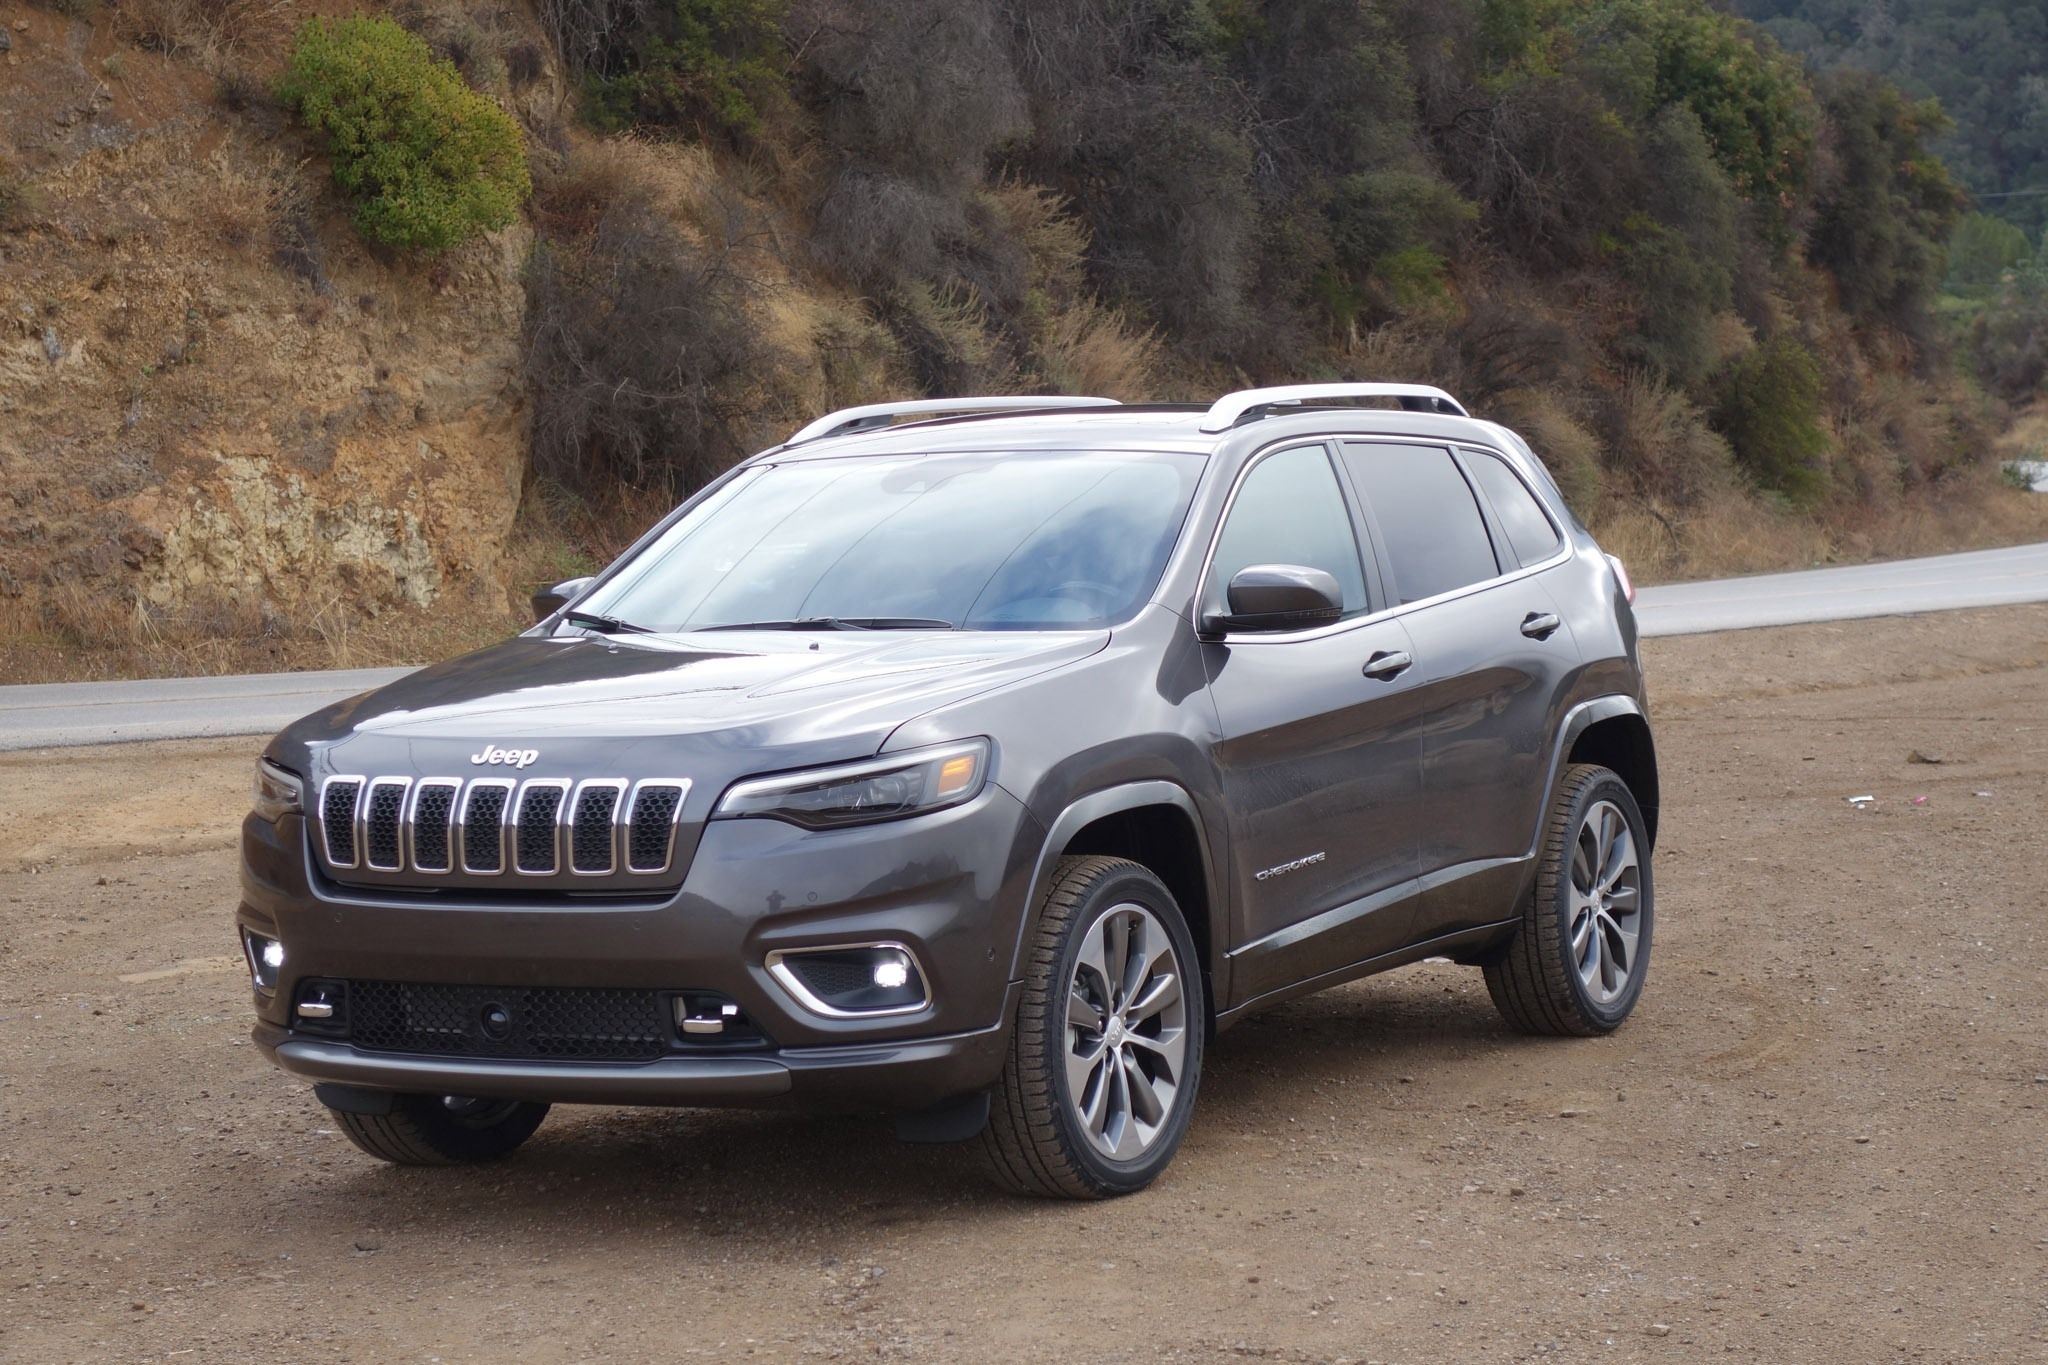 2019 Jeep Trailhawk Picture Release Date And Review With Images